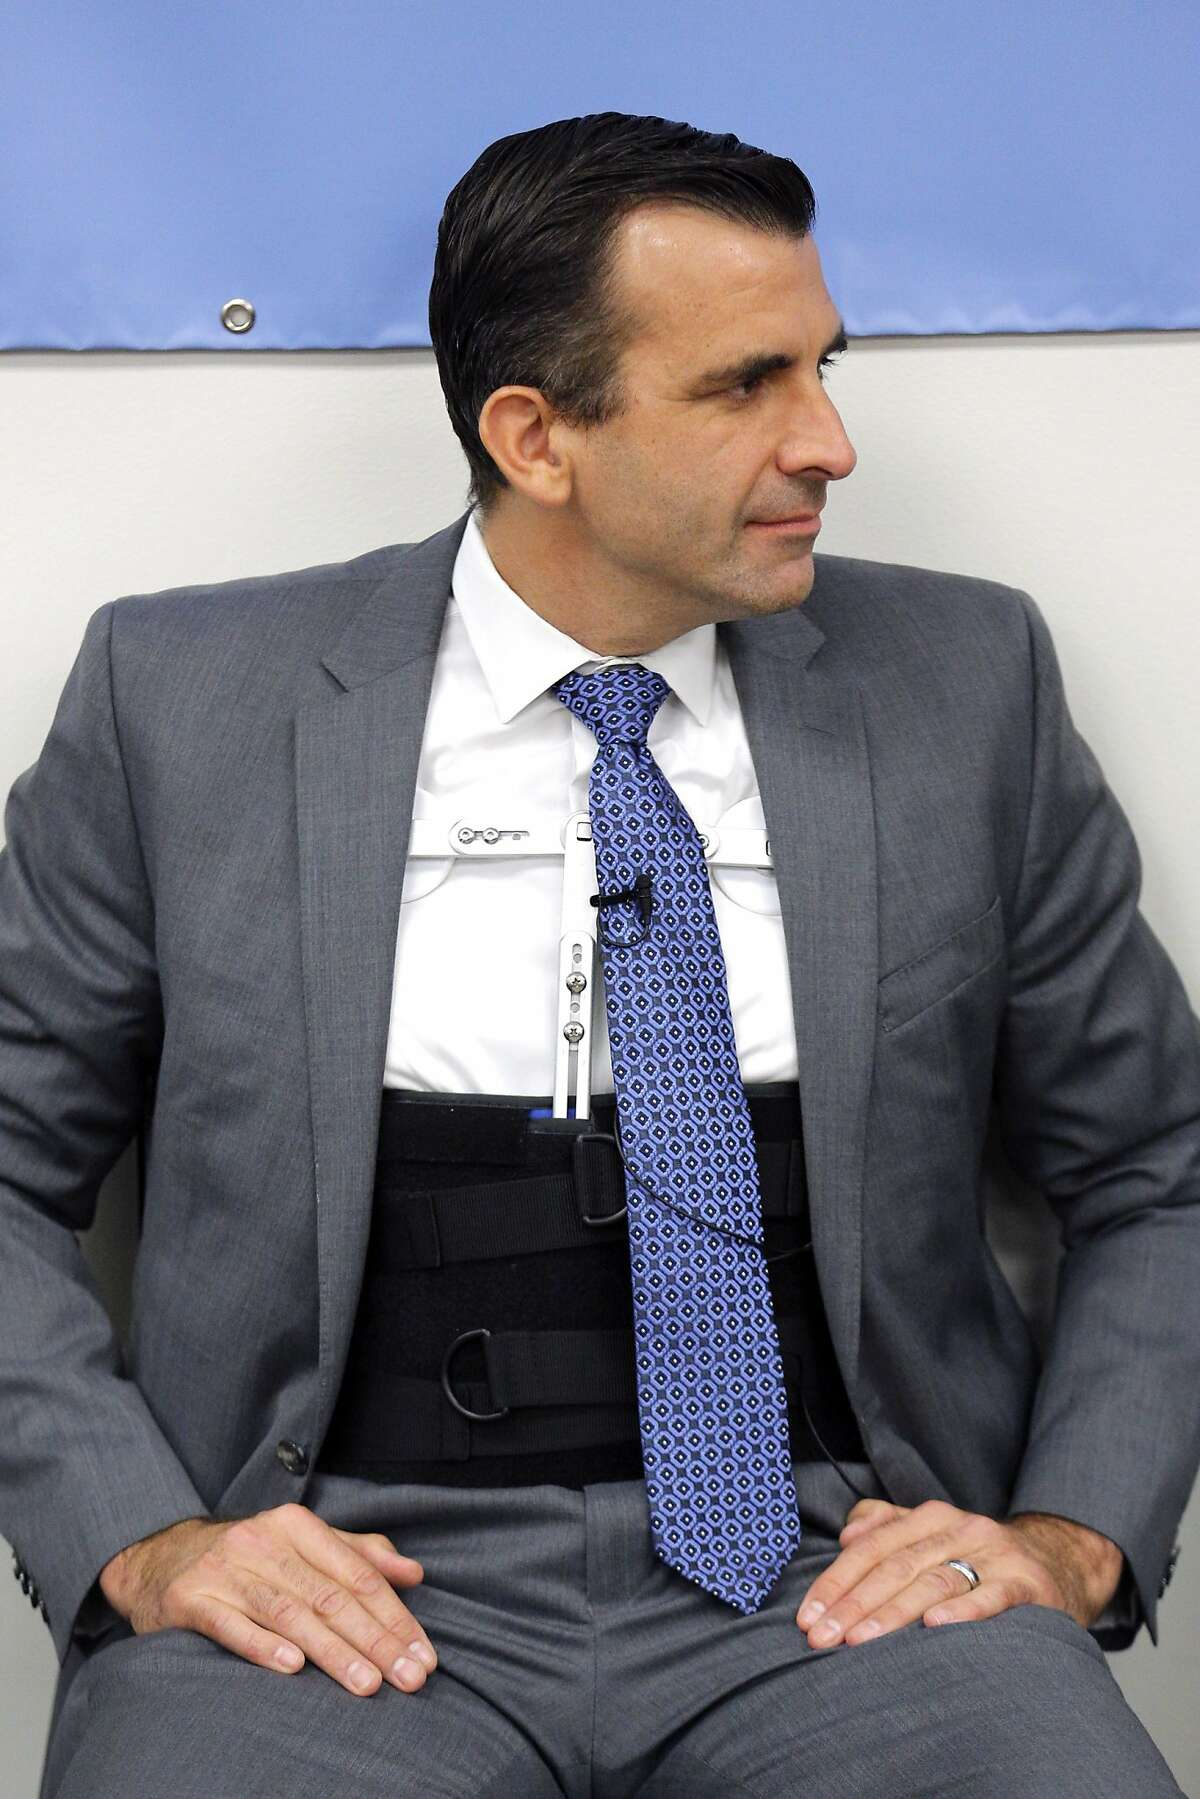 San Jose Mayor Sam Liccardo during a community meeting Tuesday, Jan. 15, 2019. The mayor is wearing a brace after being hit by a car while biking on New Year's Day.